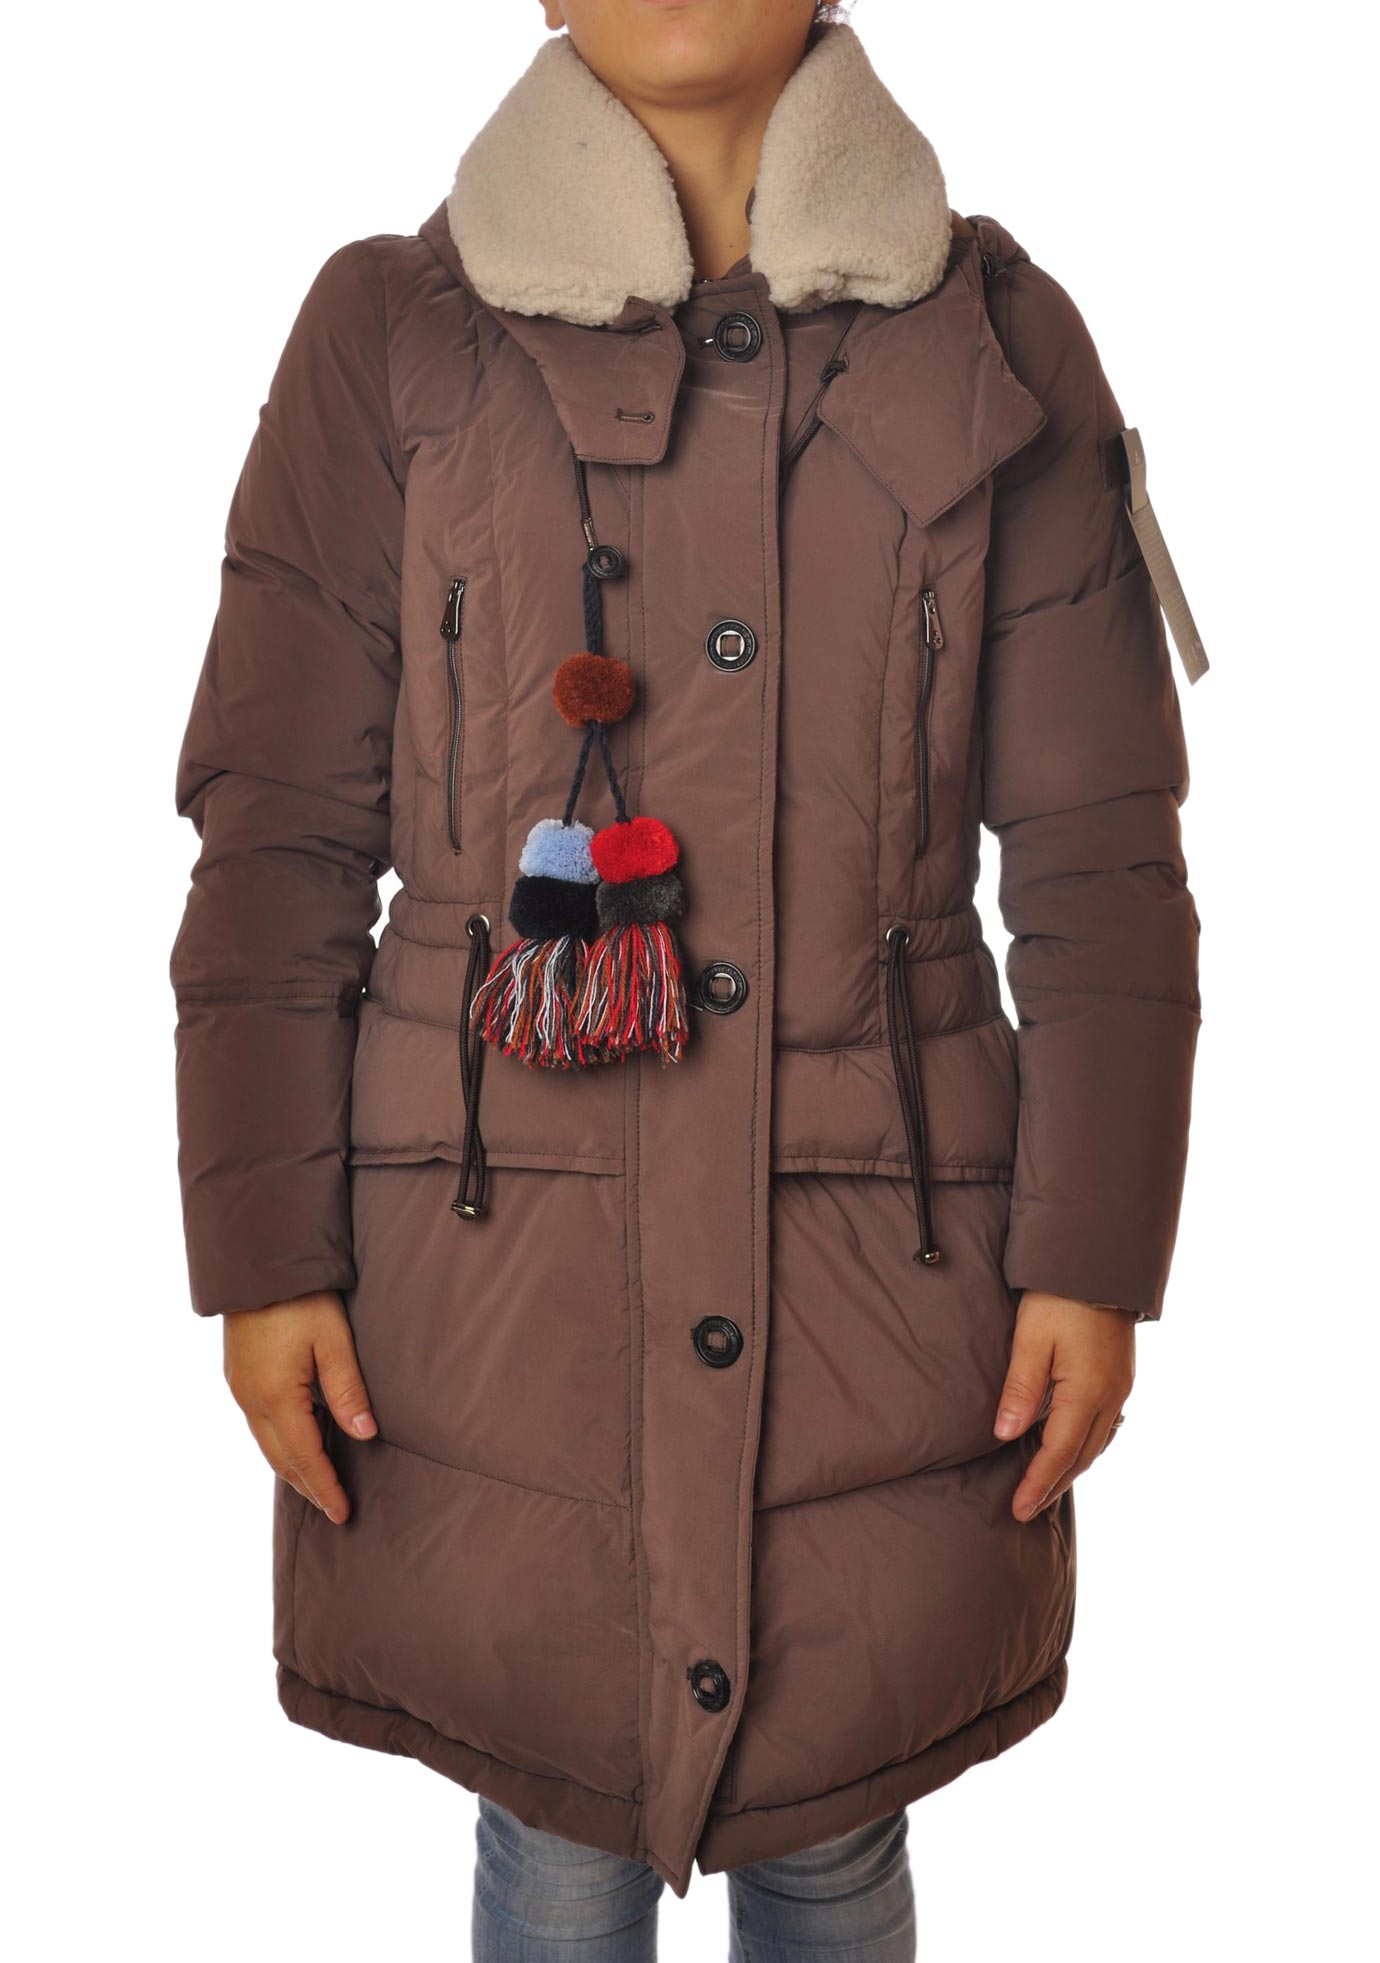 Casual Giacche Peuterey Parka Peuterey Giacche Bemymood HwY1qYtf